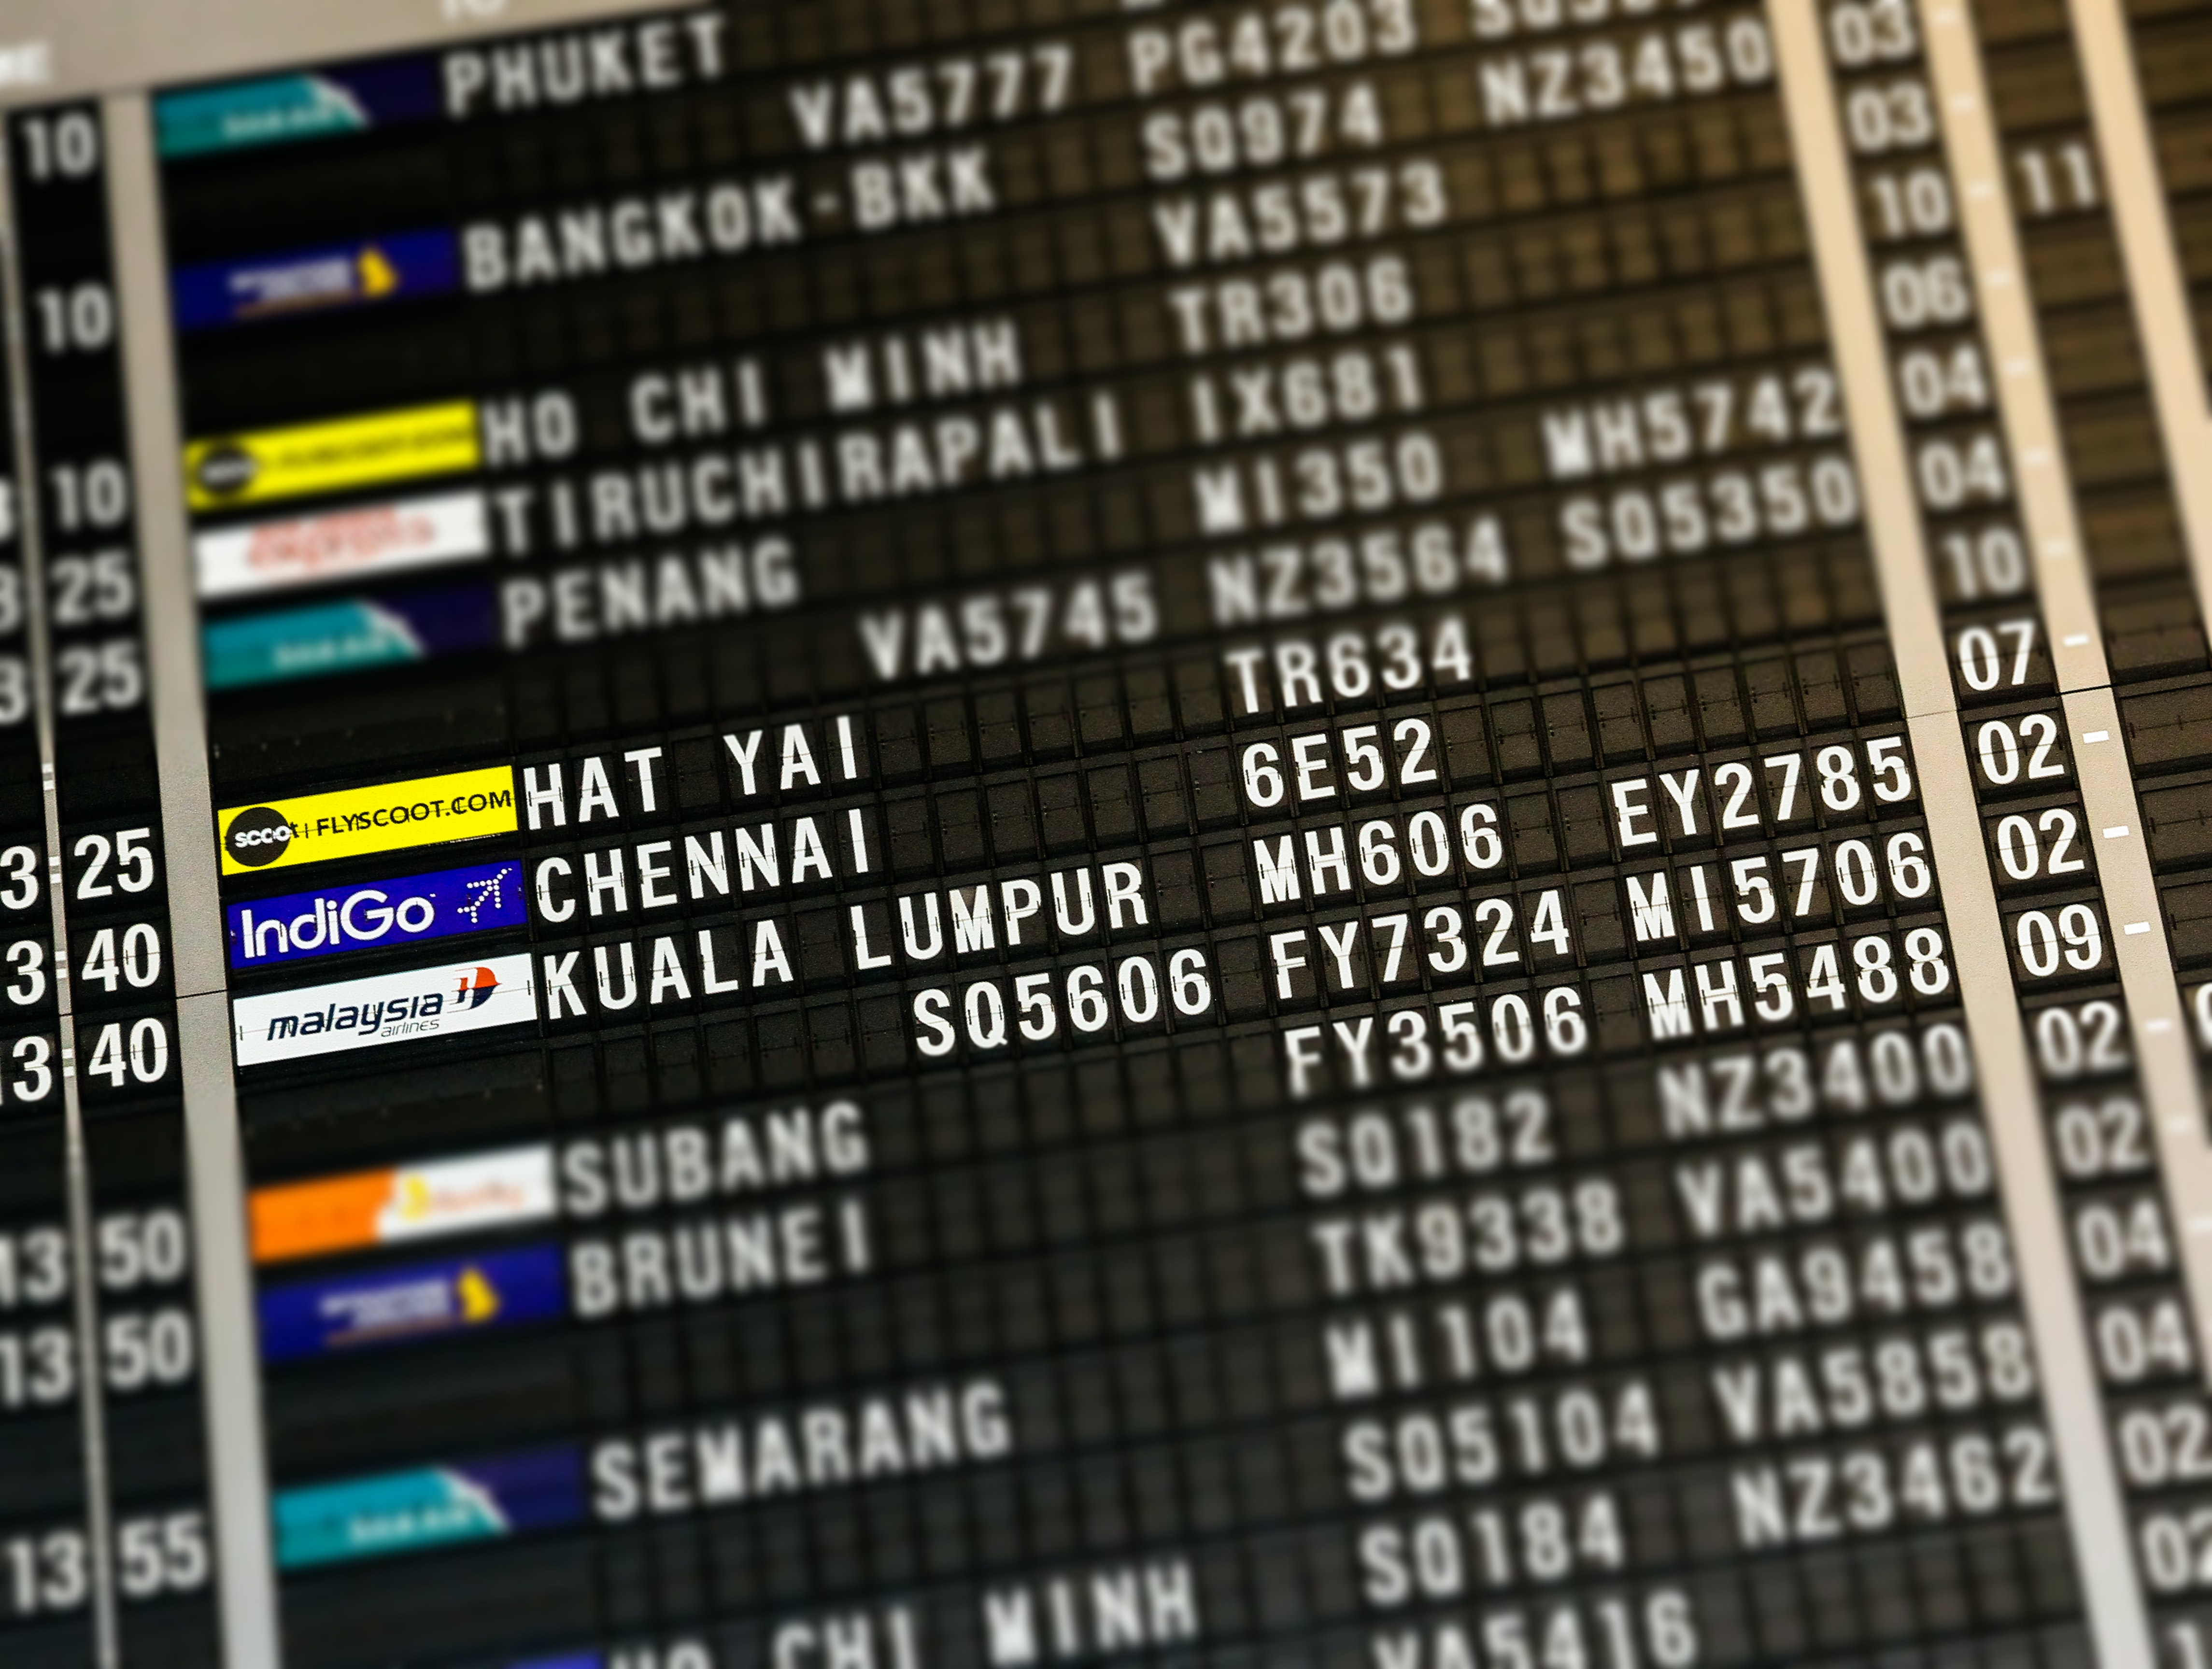 flight board highlighting Hat Yai, Chennai, and Kuala Lumpur